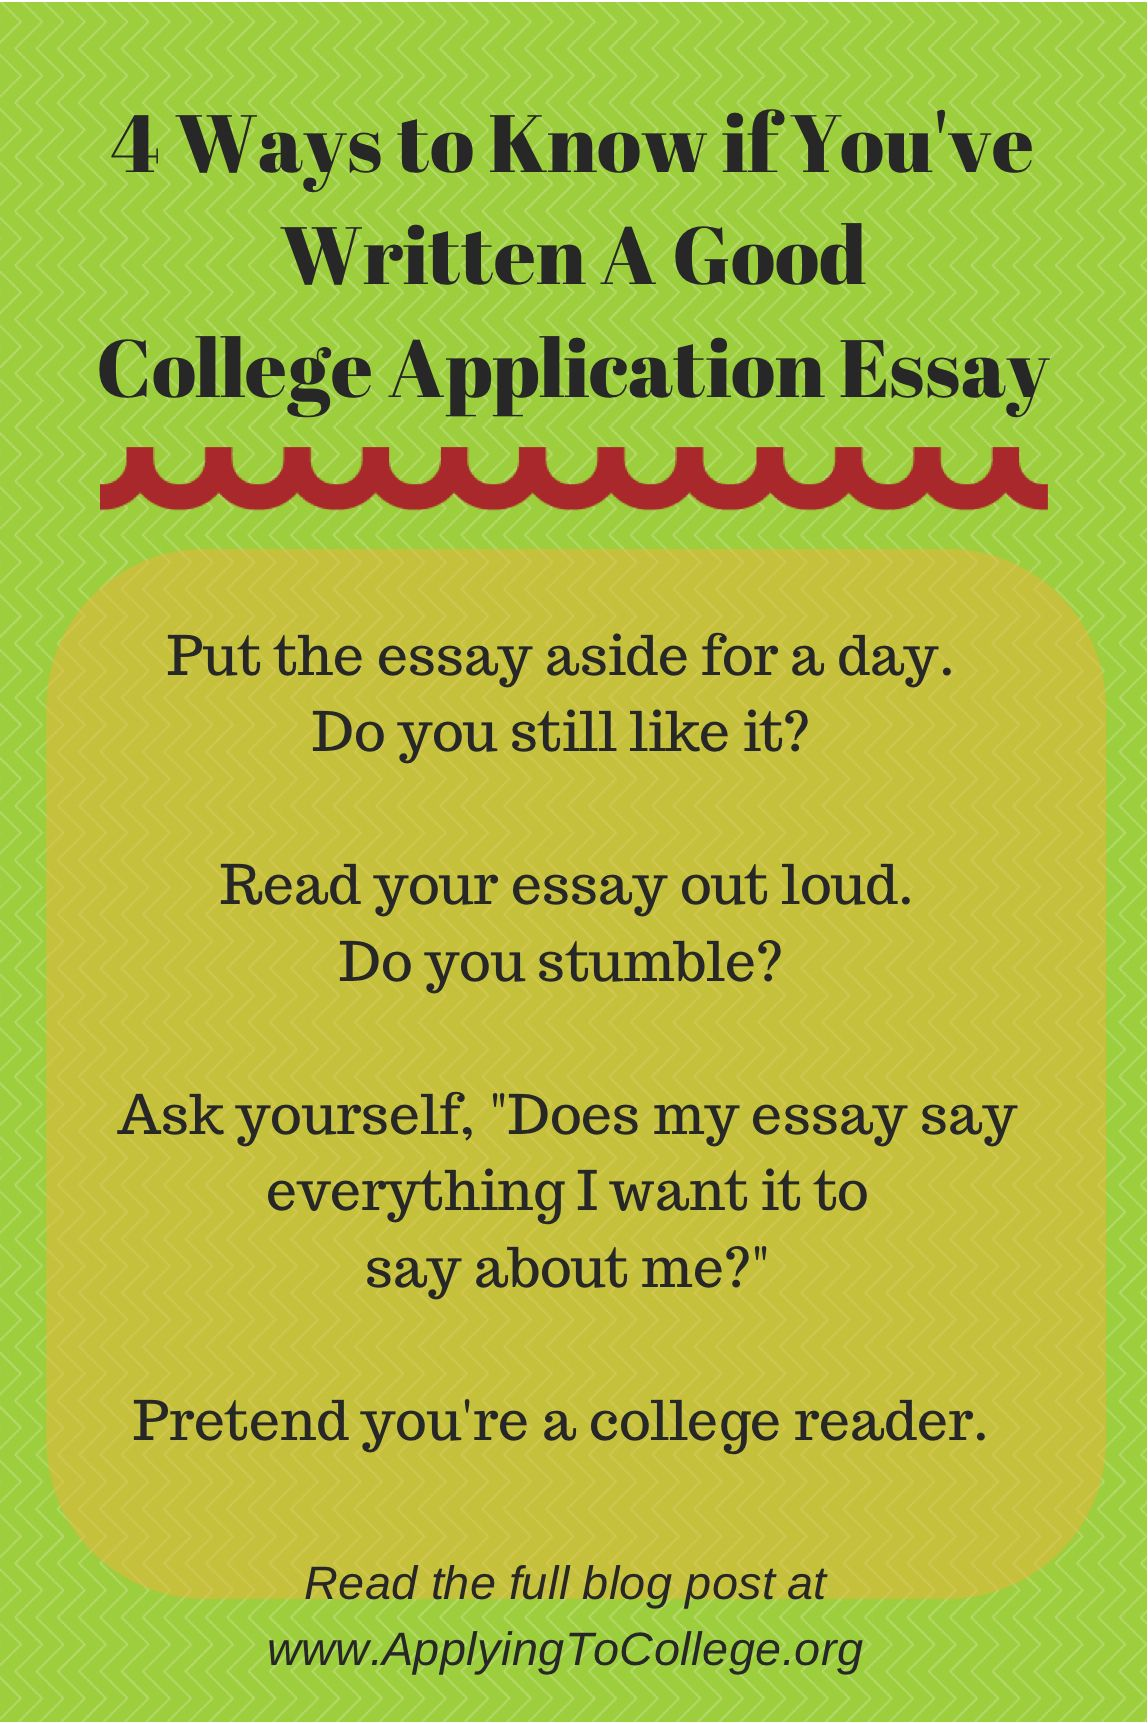 good college essays common app 5 college application essay topics that always students write about in their college application essays most complex and nuanced of the common app.